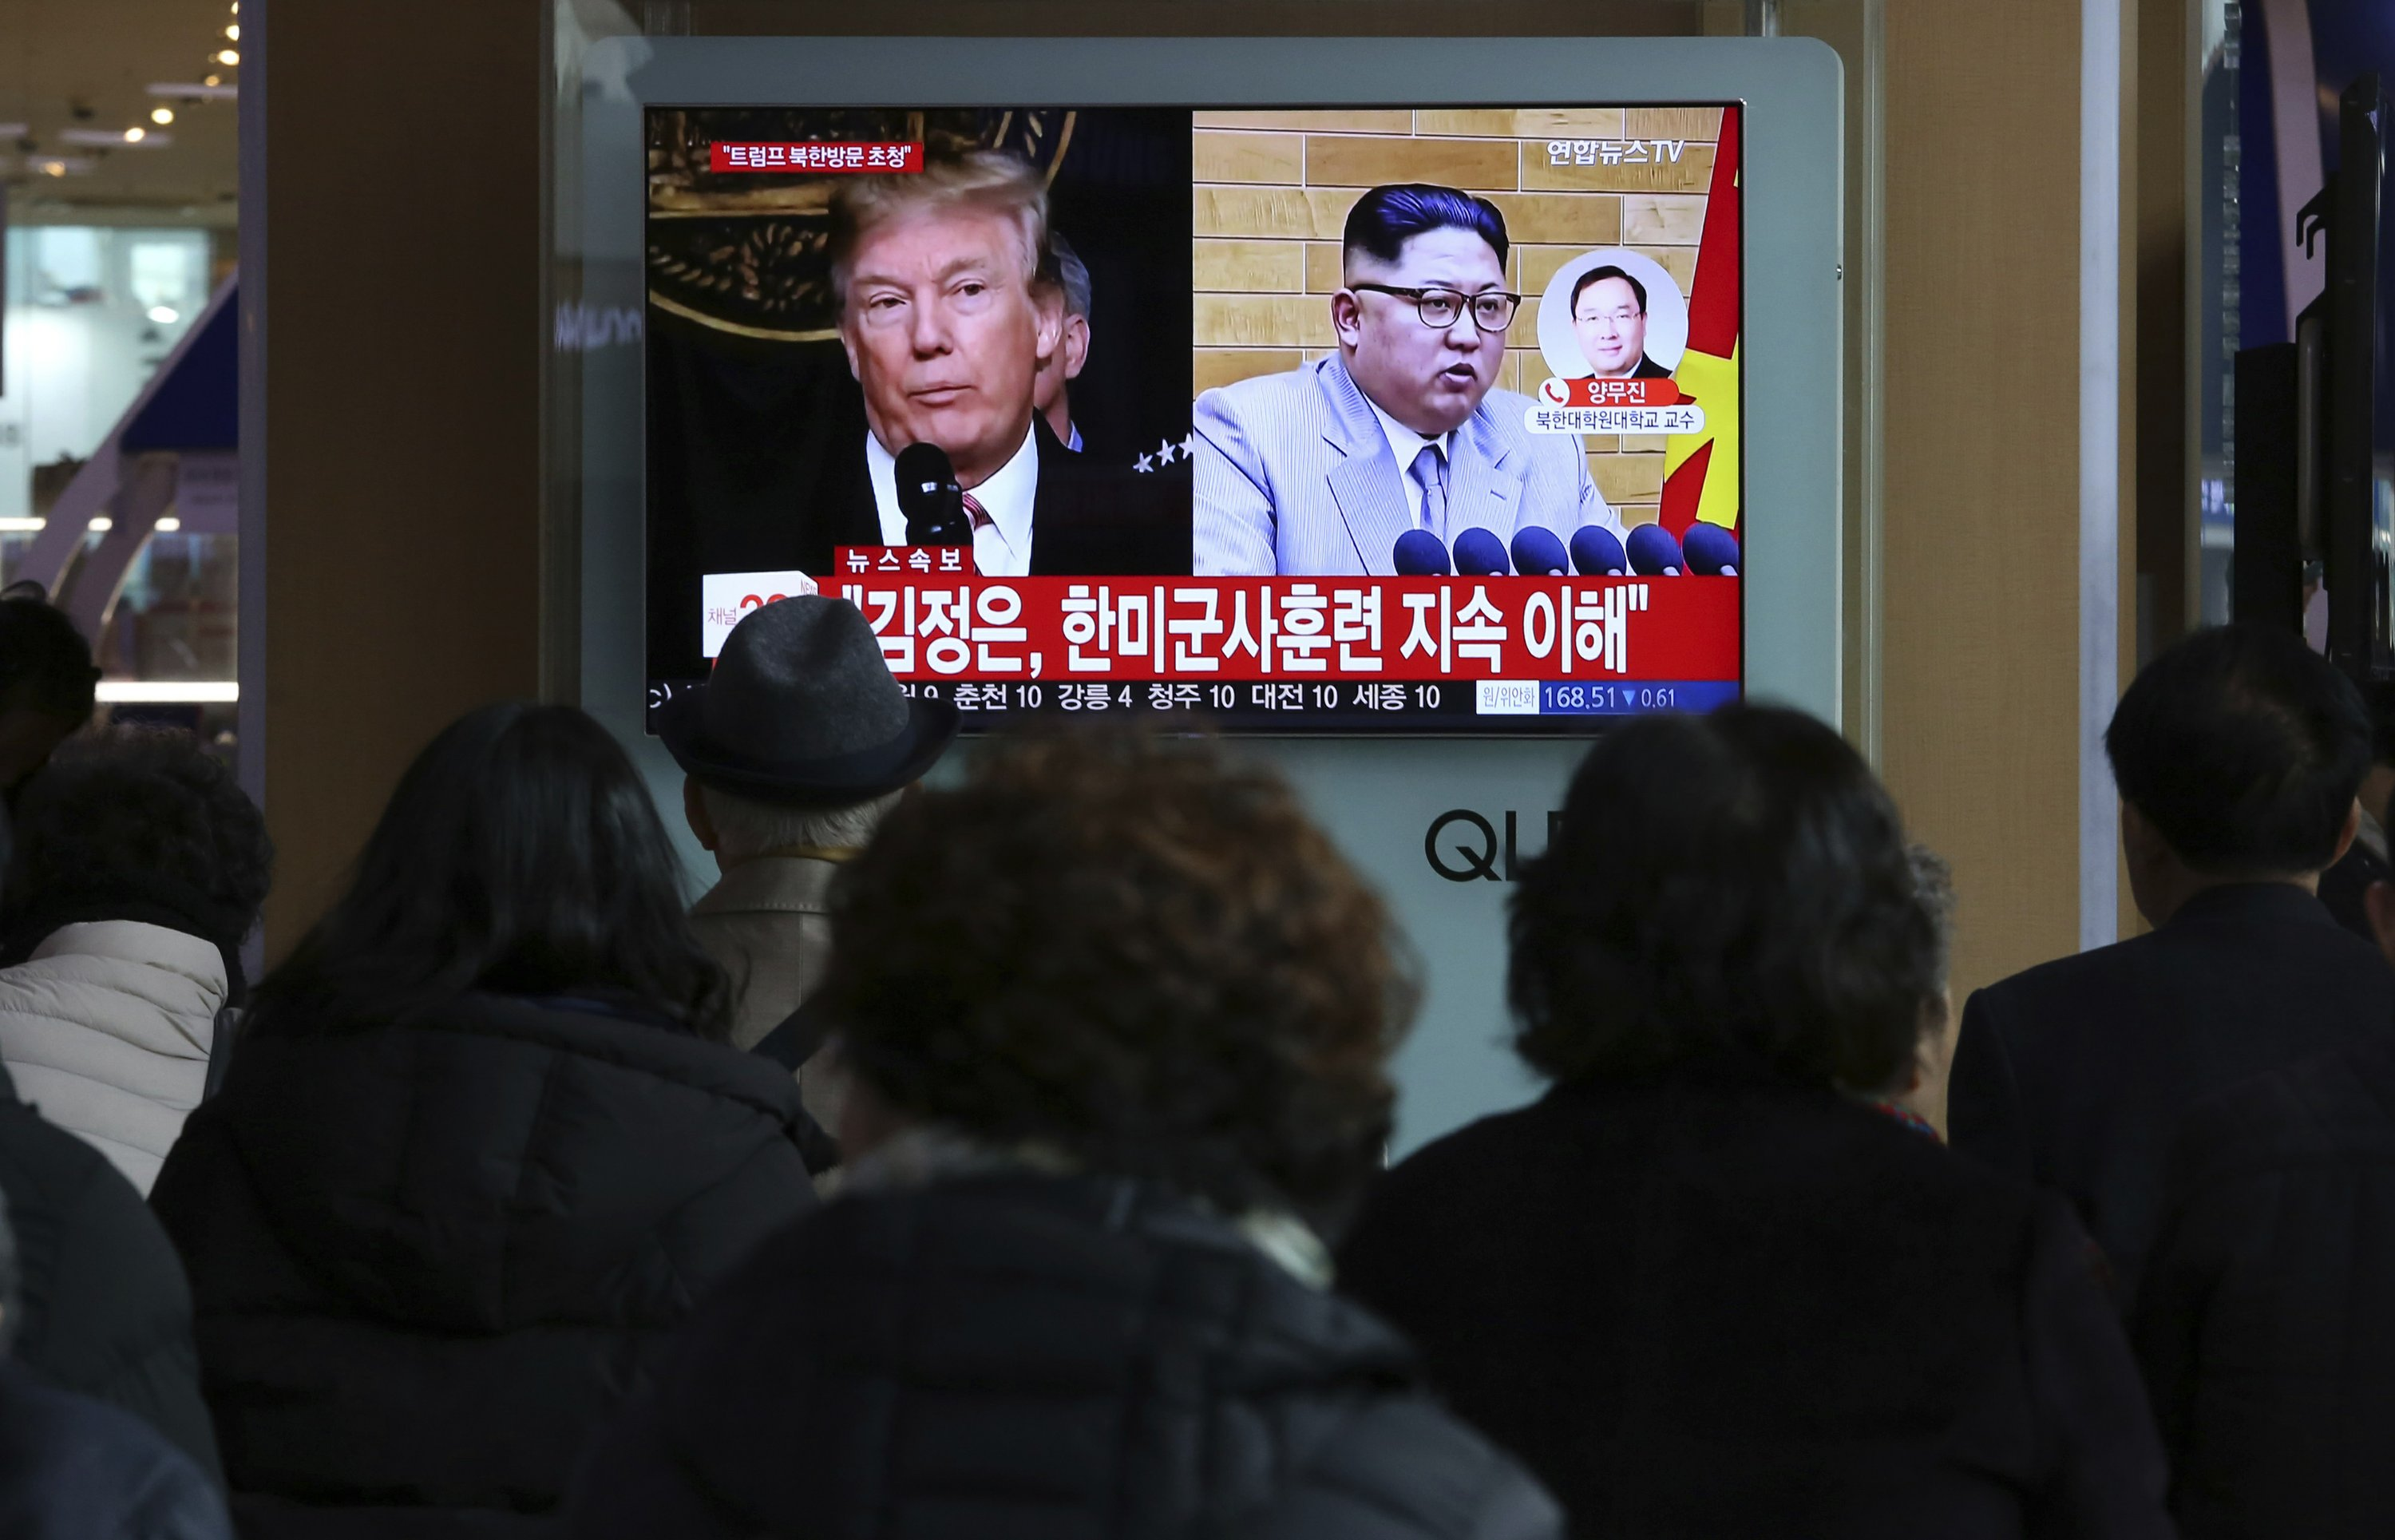 US officials: No more conditions imposed on NKorea for talks